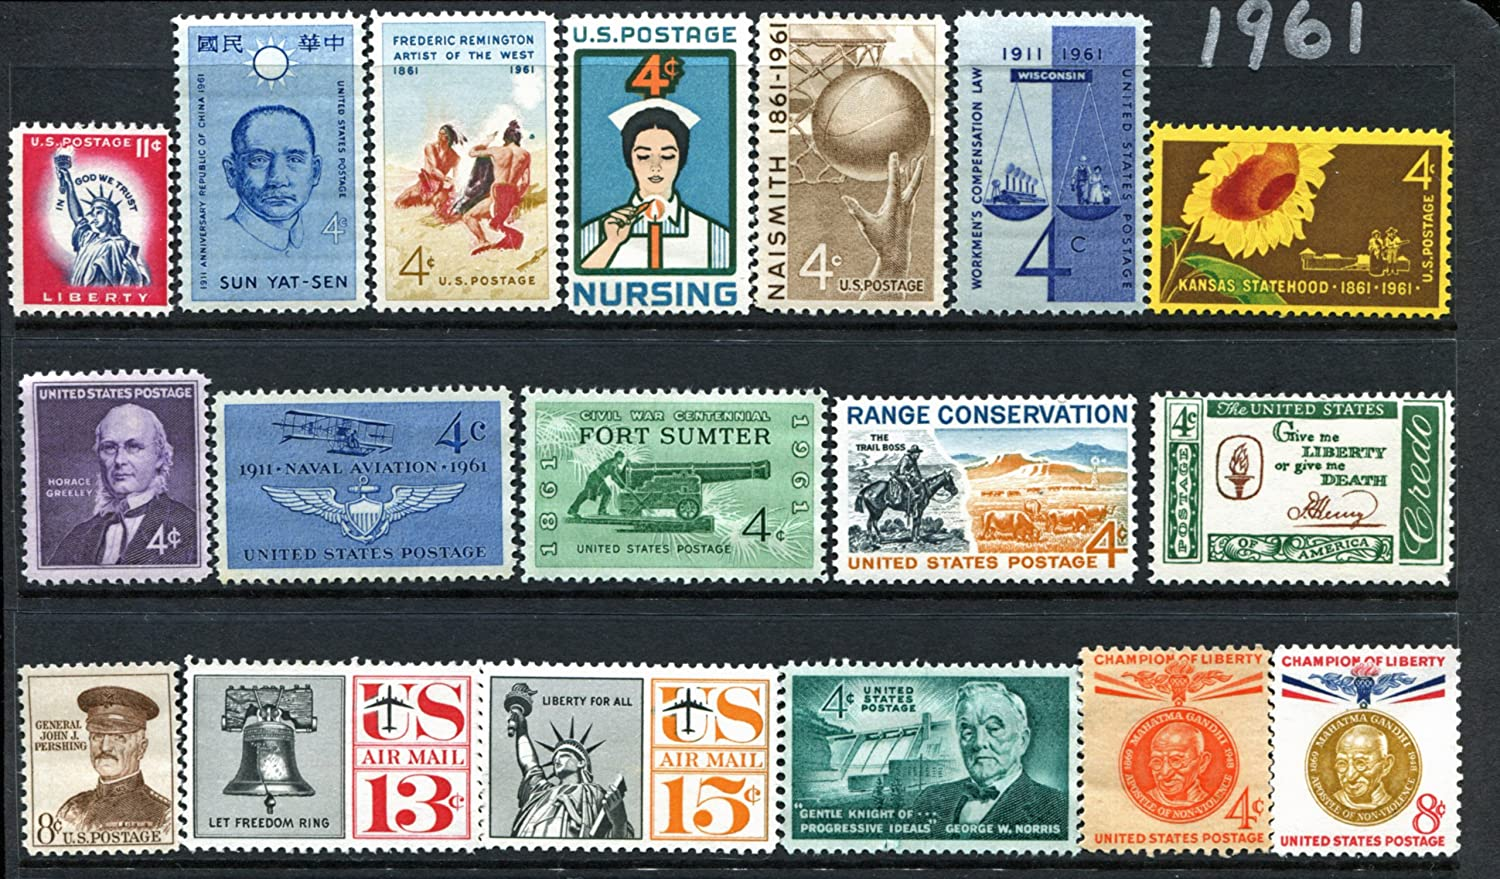 COMPLETE MINT SET OF POSTAGE STAMPS ISSUED IN THE YEAR 1961 BY THE U.S. POST OFFICE DEPT.